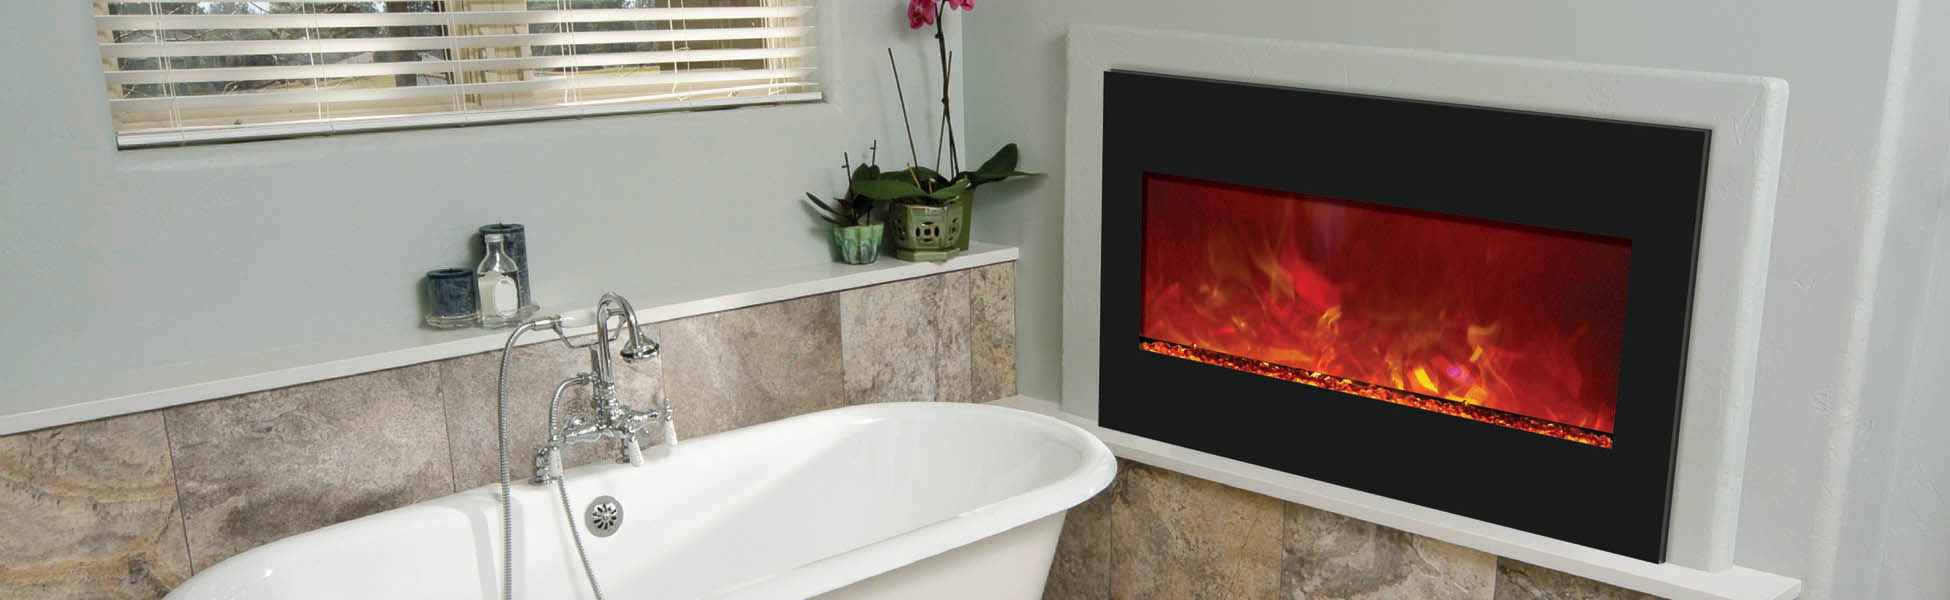 electric fireplace zero clearance